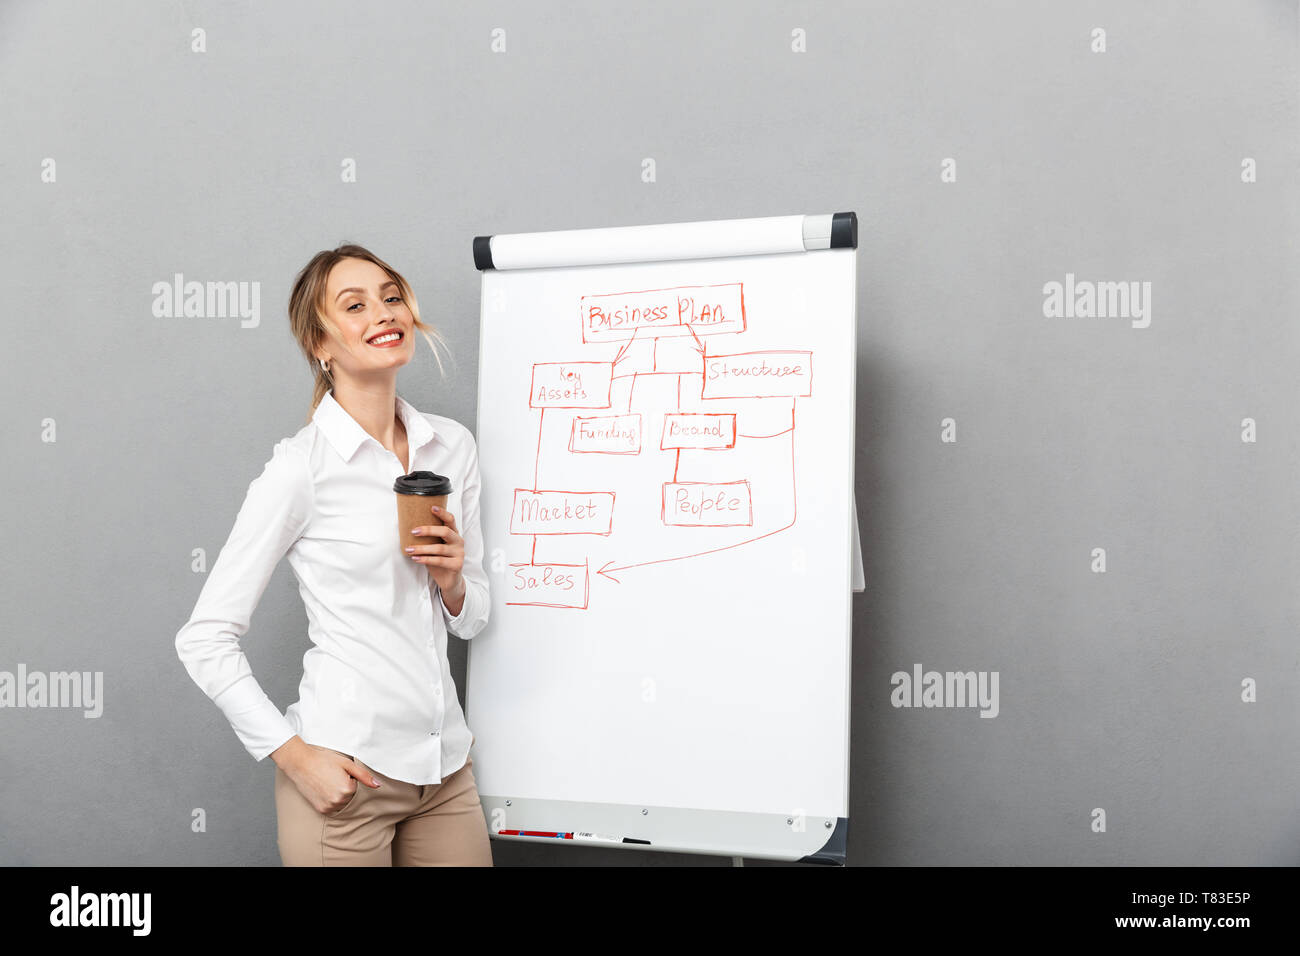 Image of successful businesswoman in formal wear drinking coffee while making presentation using flipchart in the office isolated over gray background - Stock Image